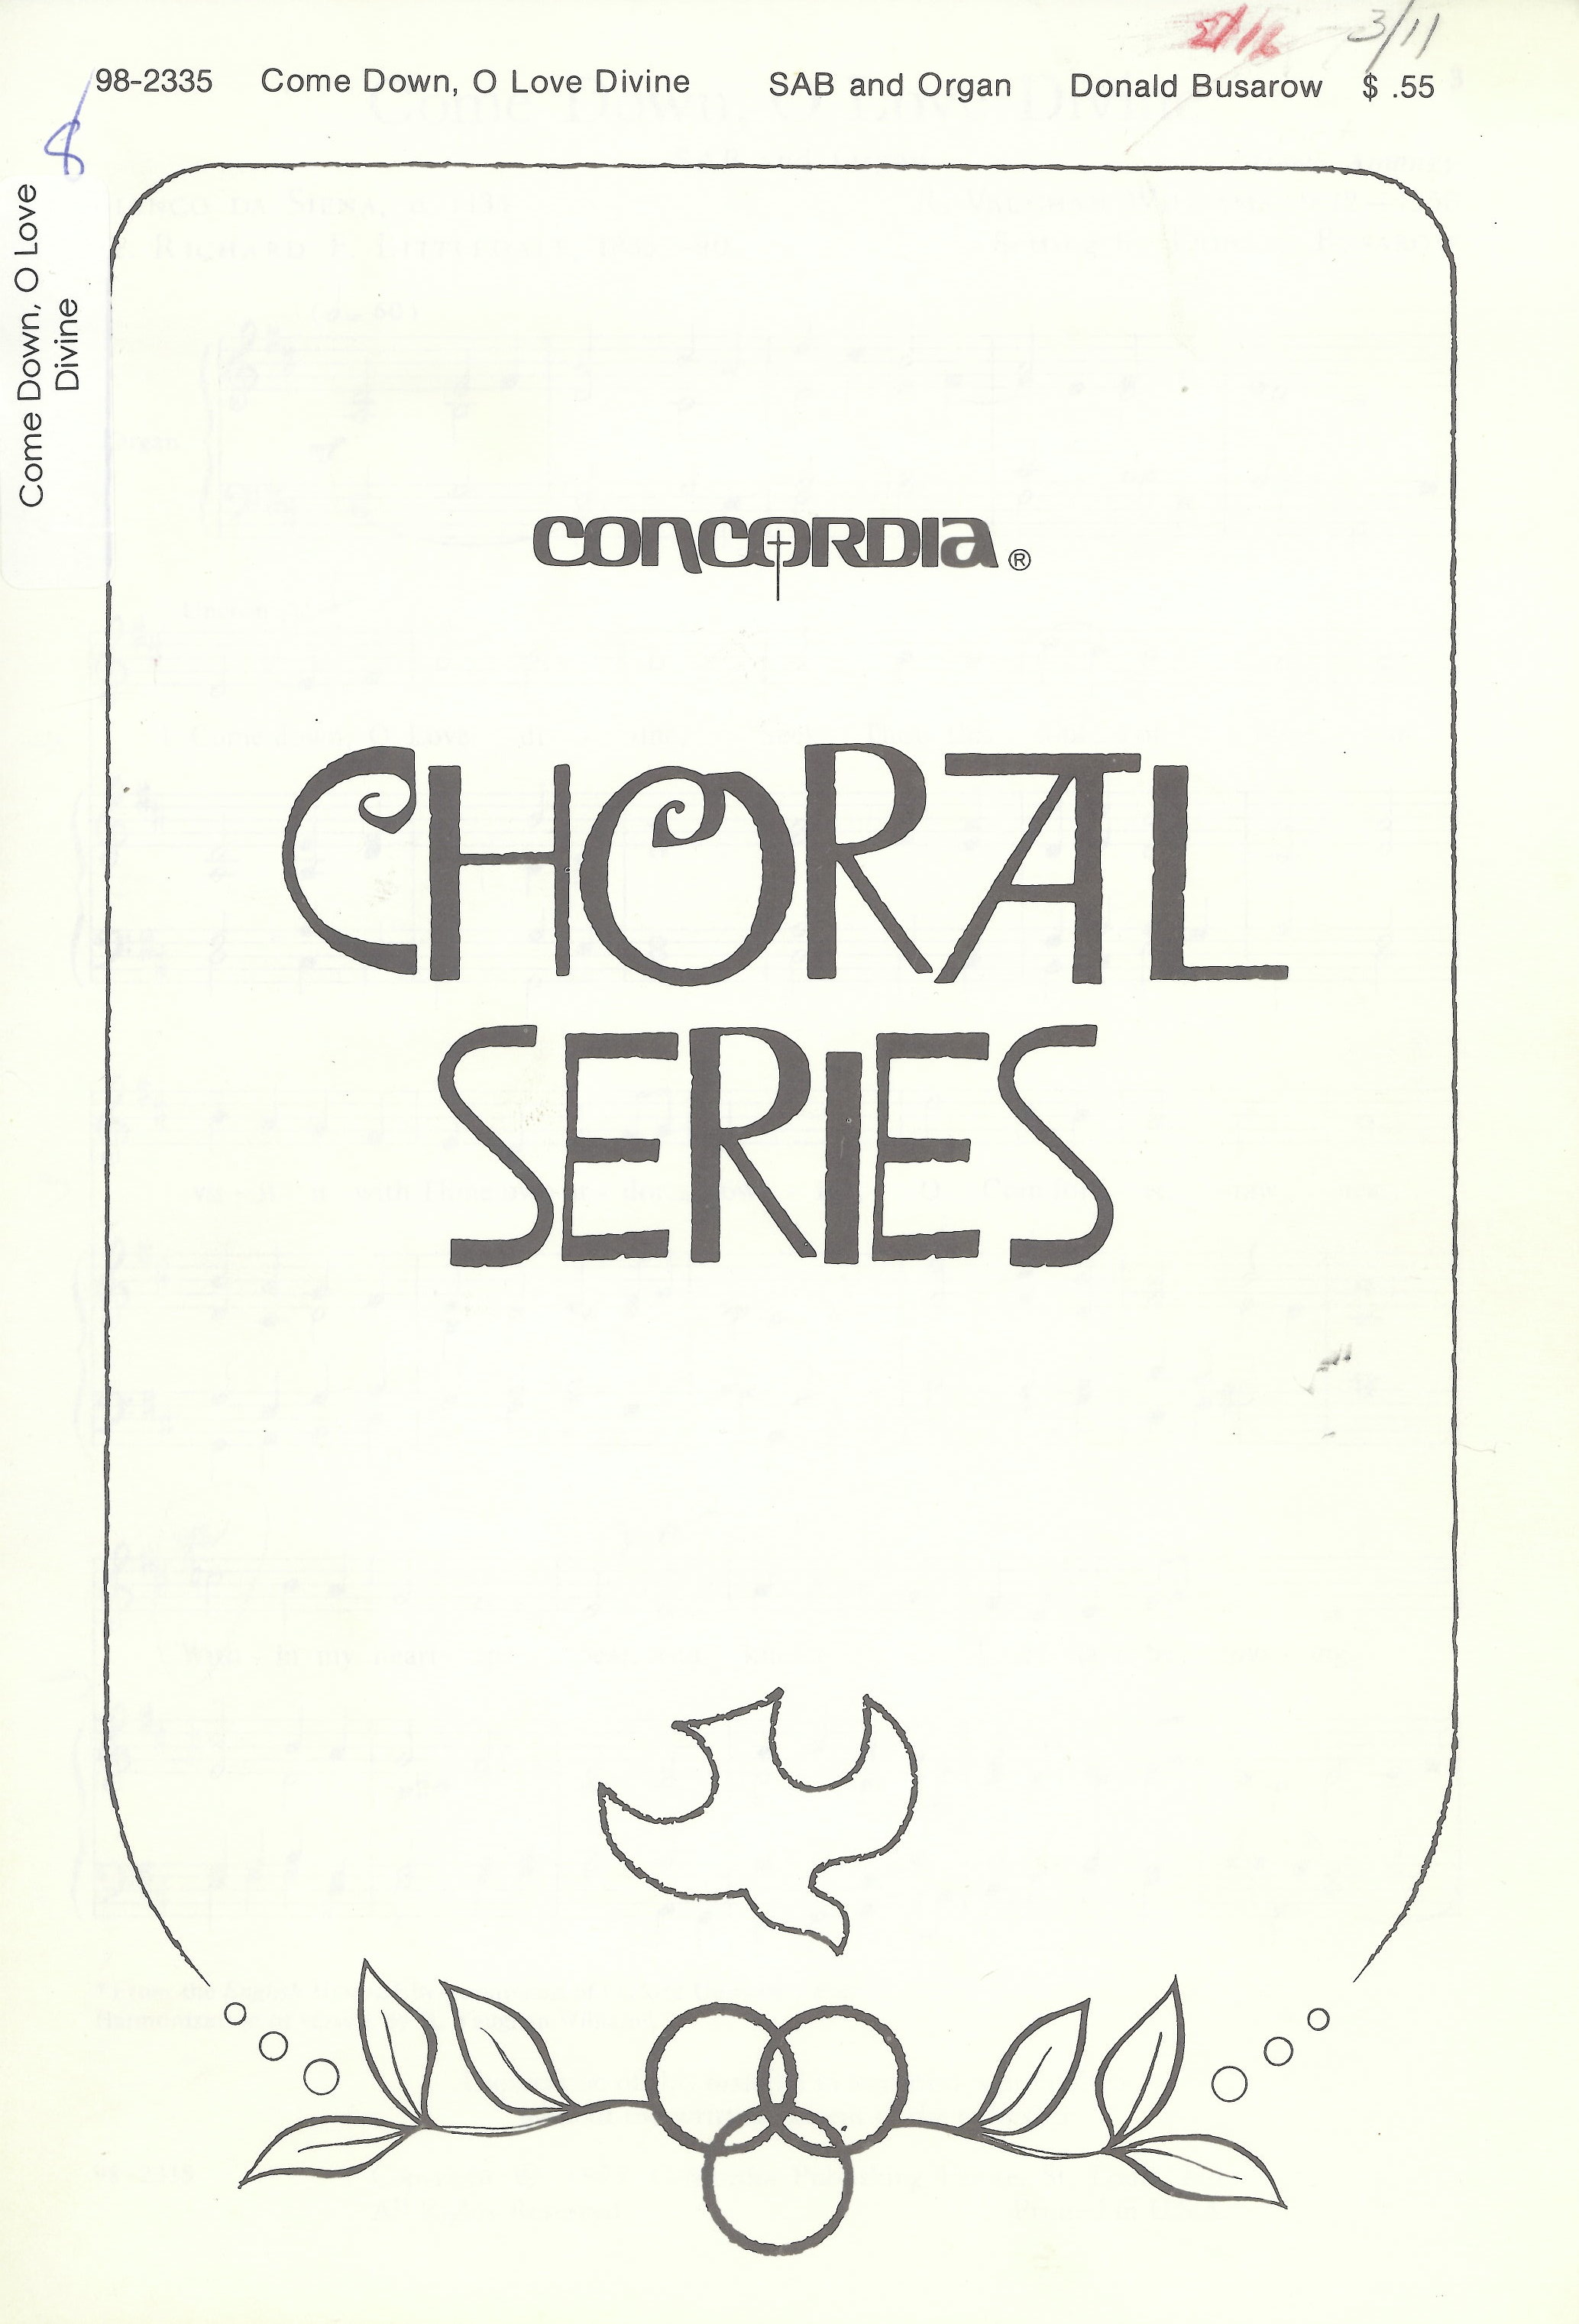 closed « Sermons Categories « Music at Edwards Church